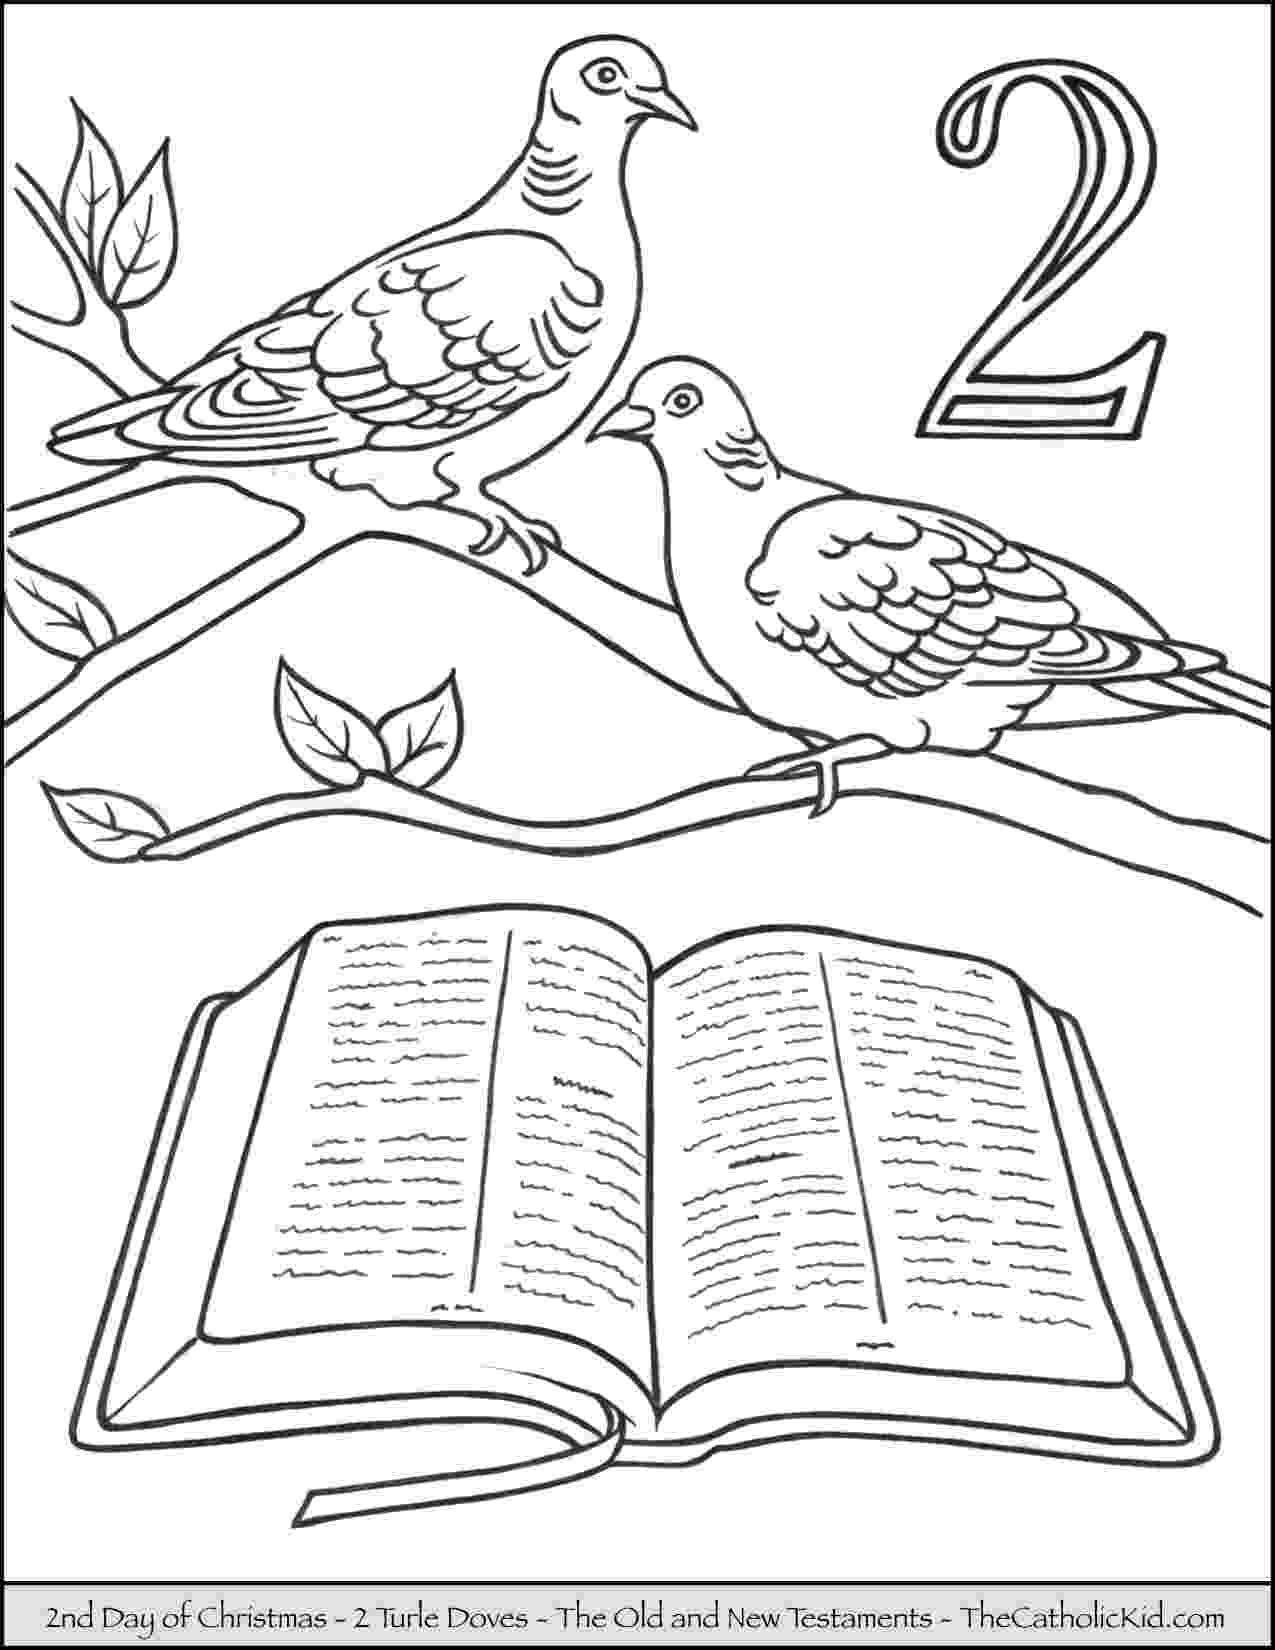 doves coloring pages dove coloring pages download and print dove coloring pages pages doves coloring